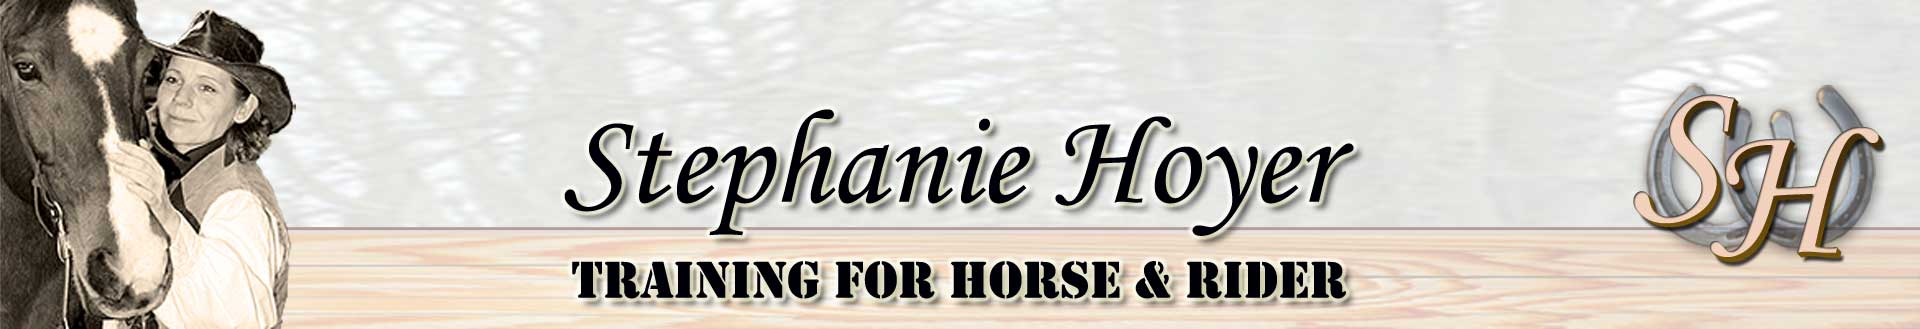 Stephanie Hoyer - Training for Horse and Rider